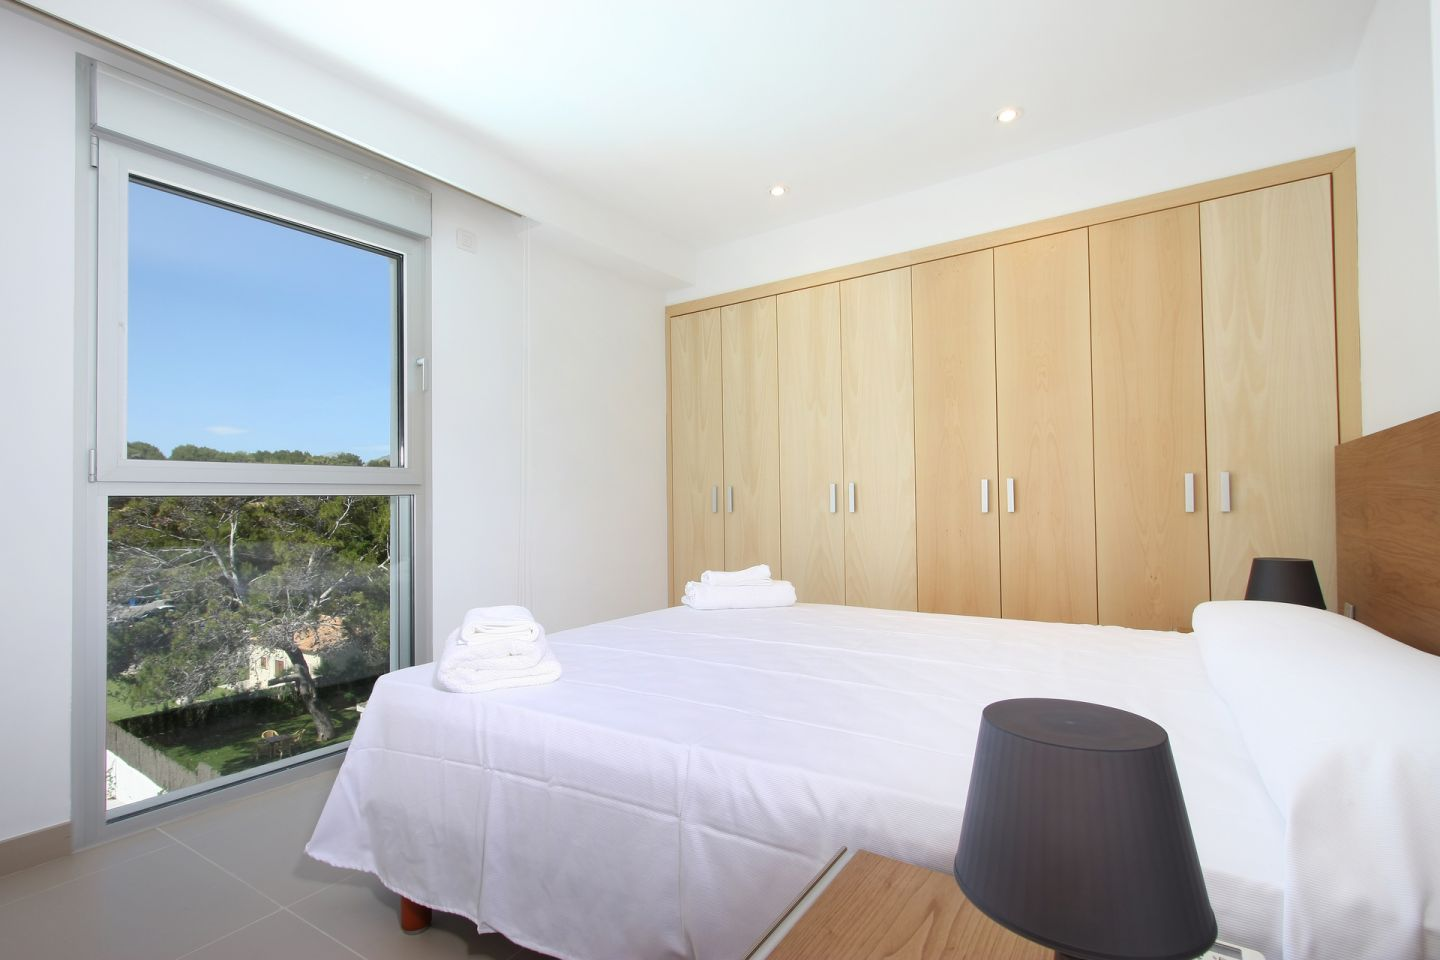 2 Bed Apartment for sale in Cala San Vicente 8